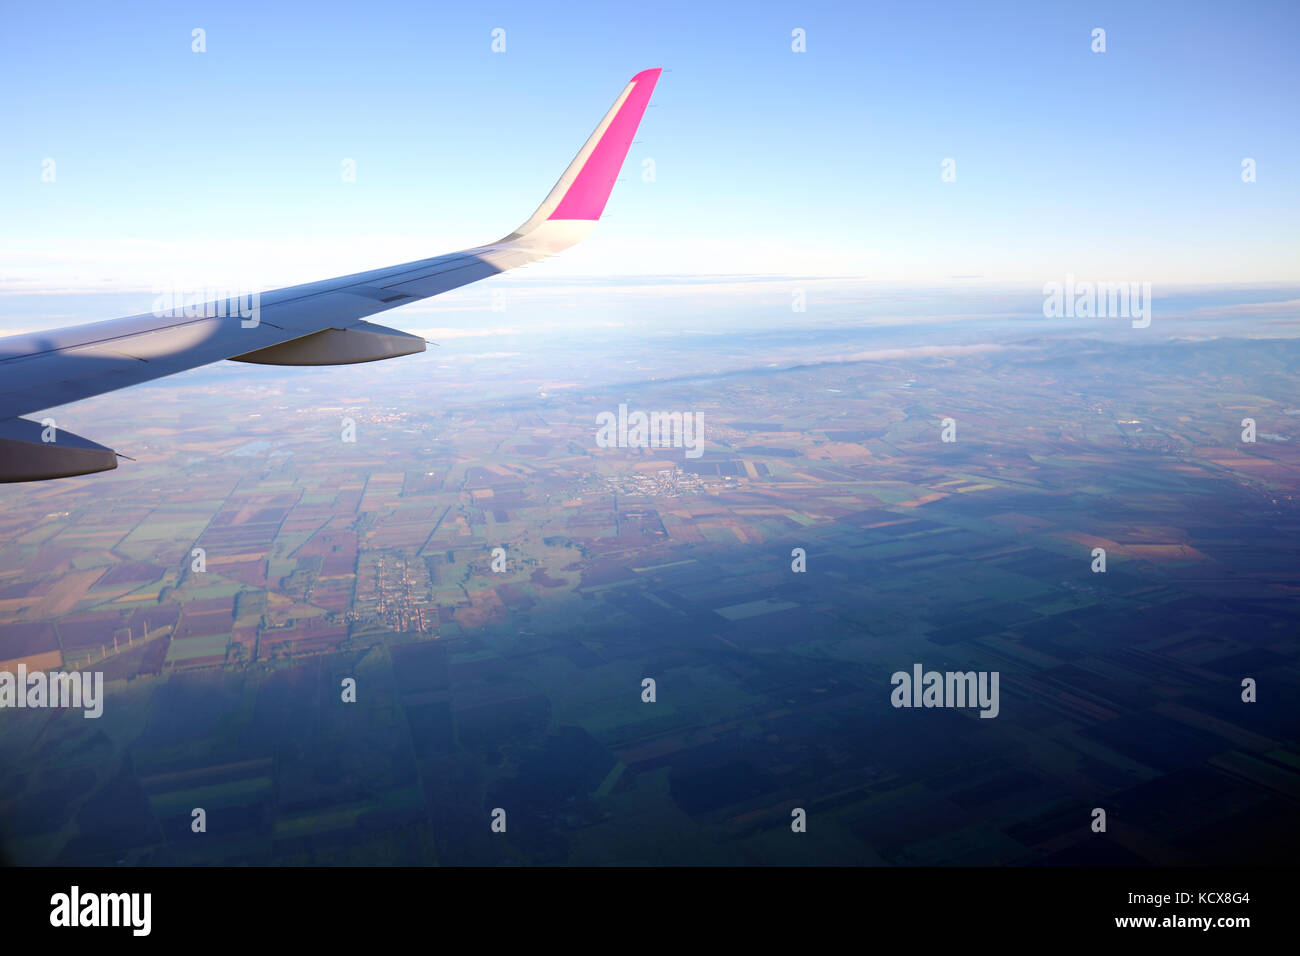 View of window at flying airplane and sky with clouds from top view. Stock Photo